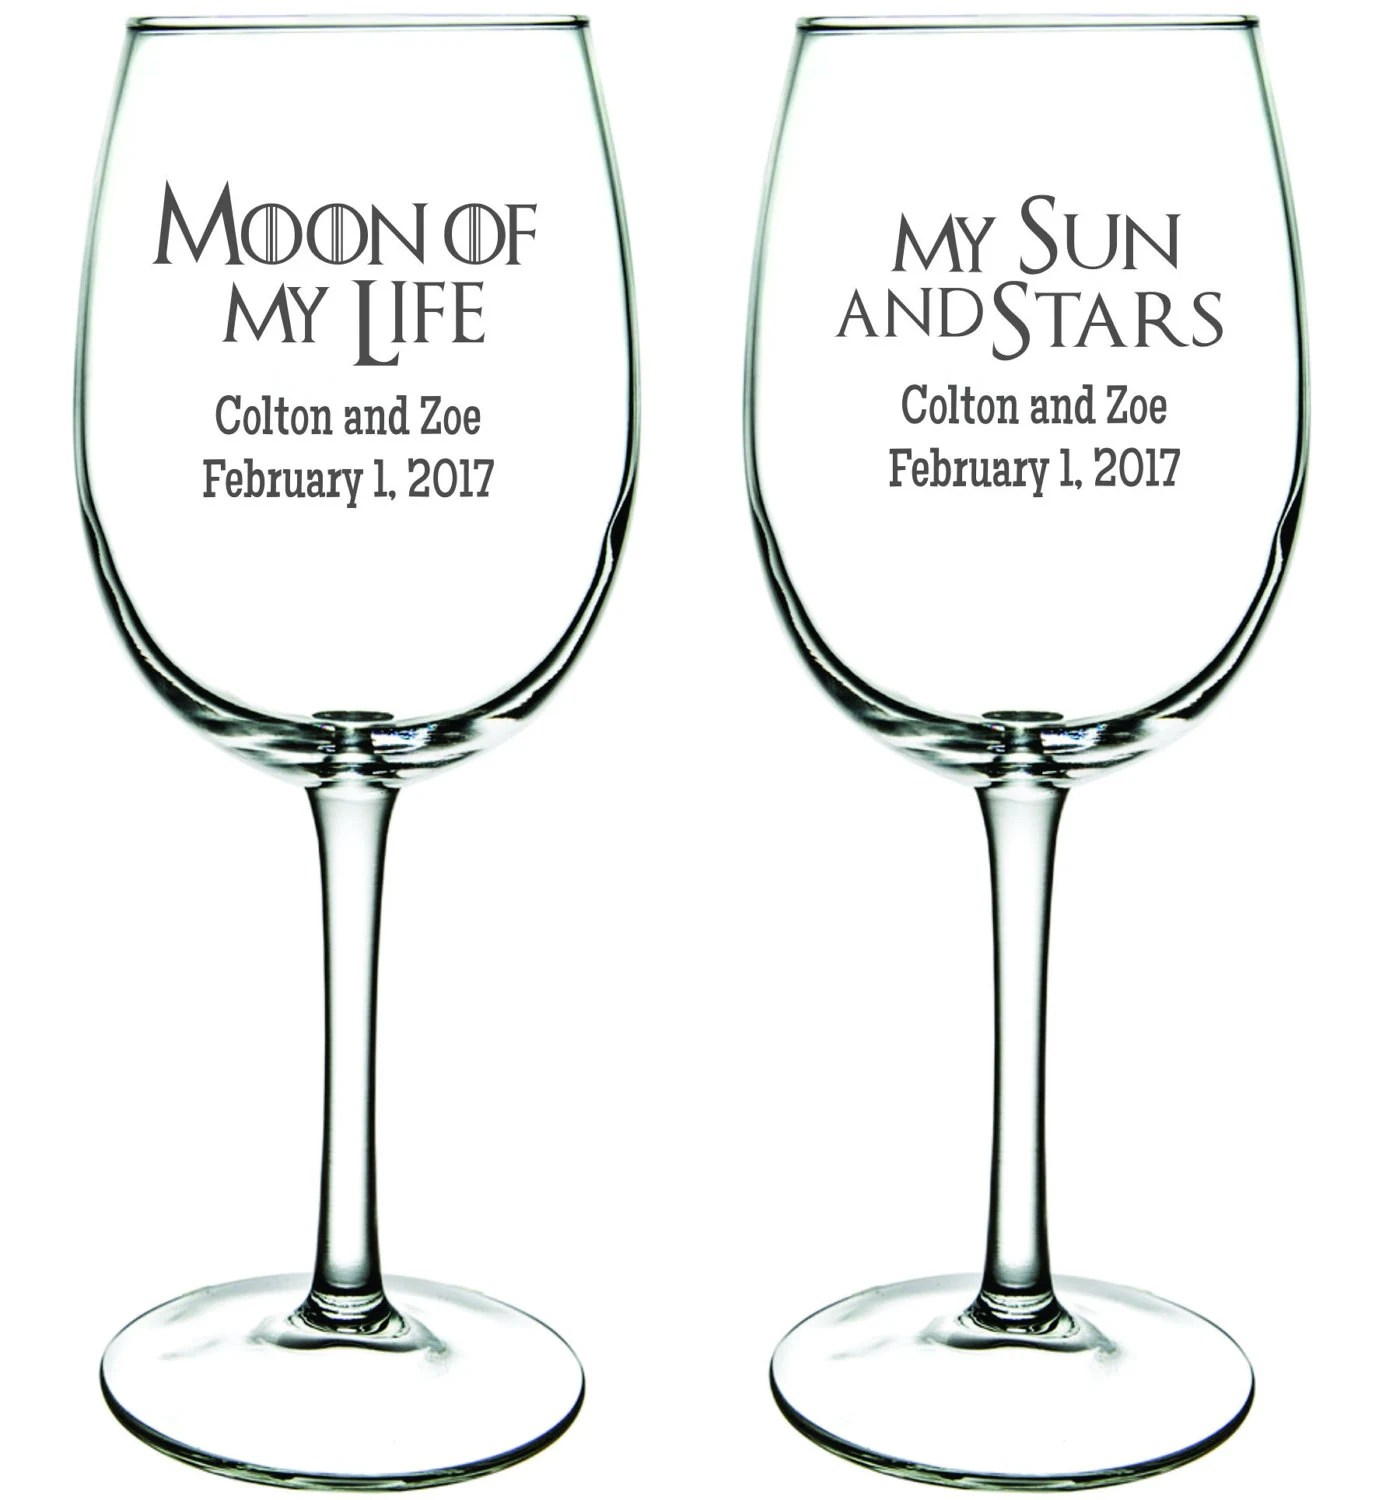 Game of Thrones Wine Glasses Moon of My Life My Sun and